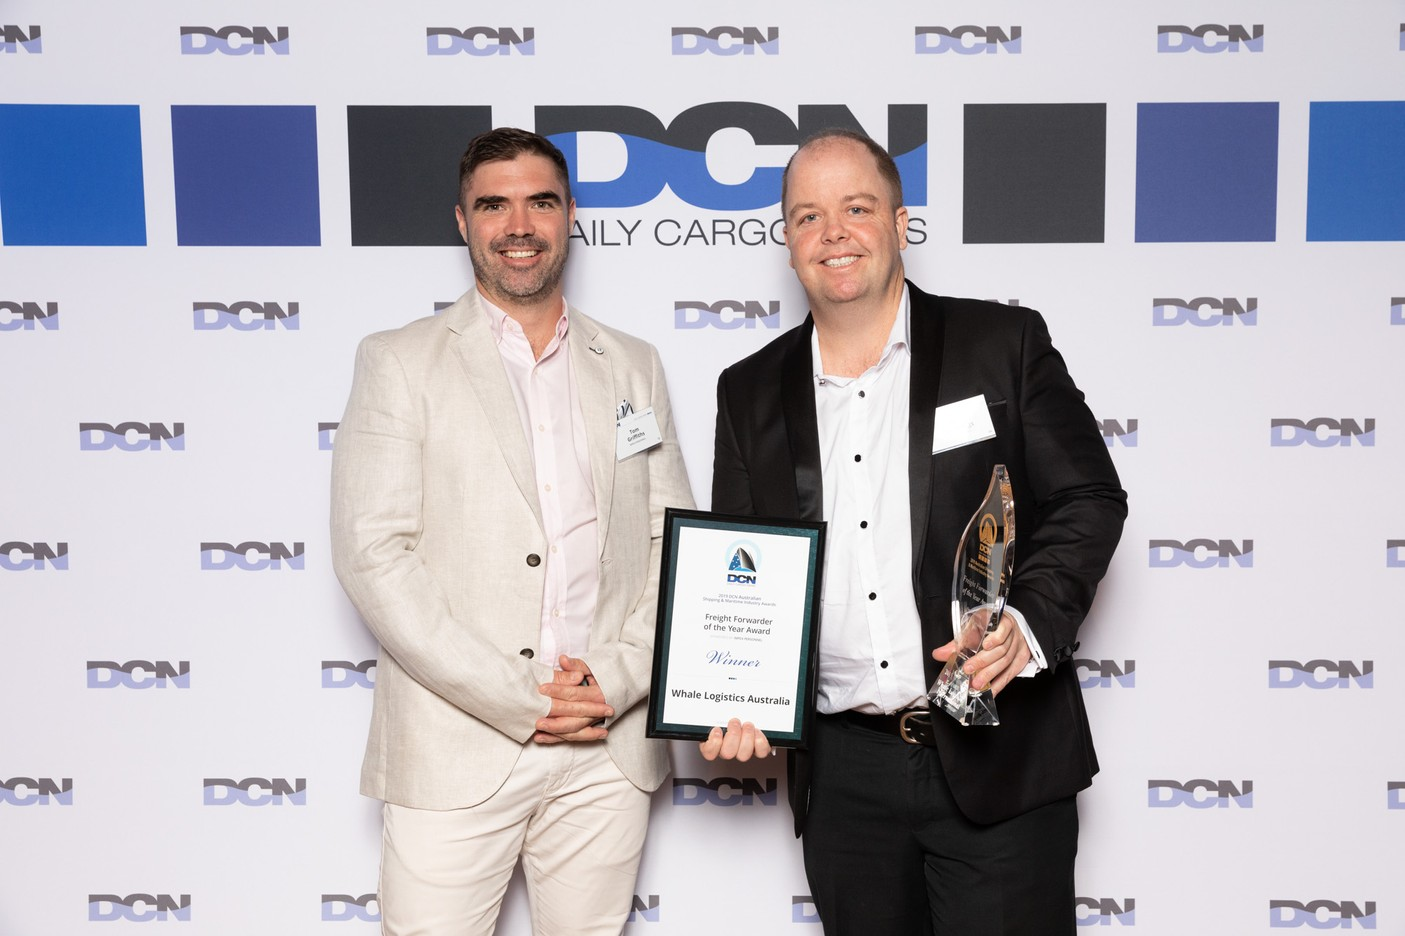 Freight Forwarder of the Year DCN Awards